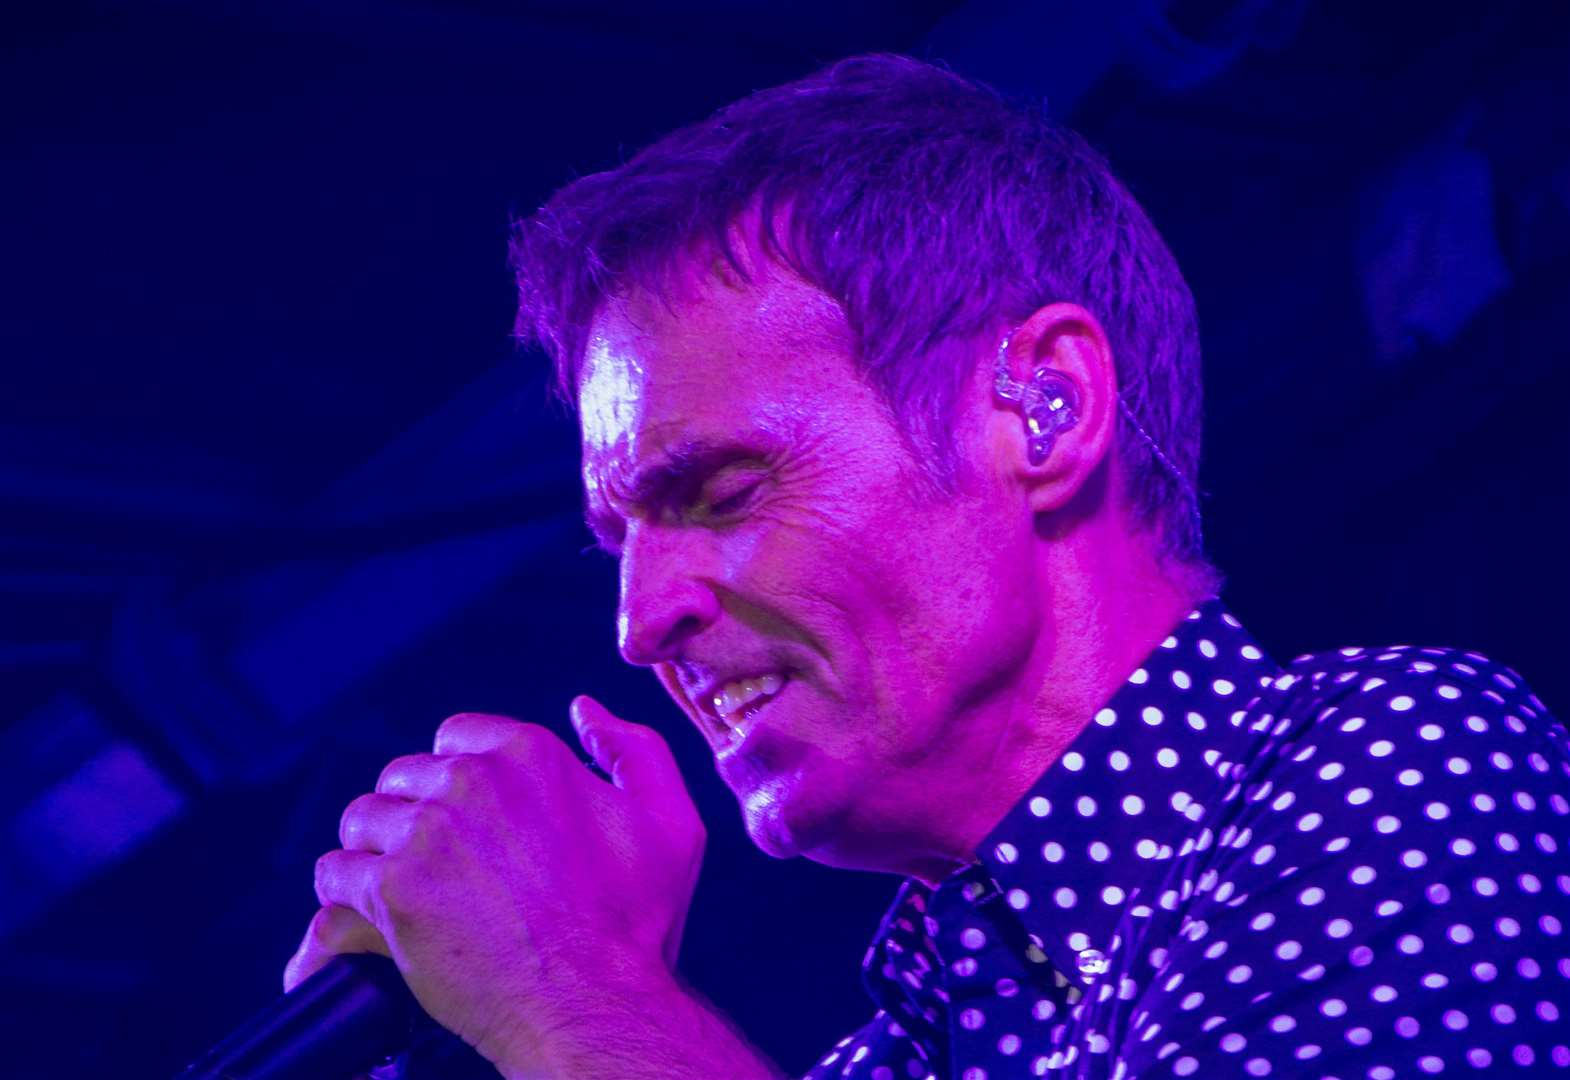 Final weekend of Festival Too with Marti Pellow, Cast and 5ive the highlights